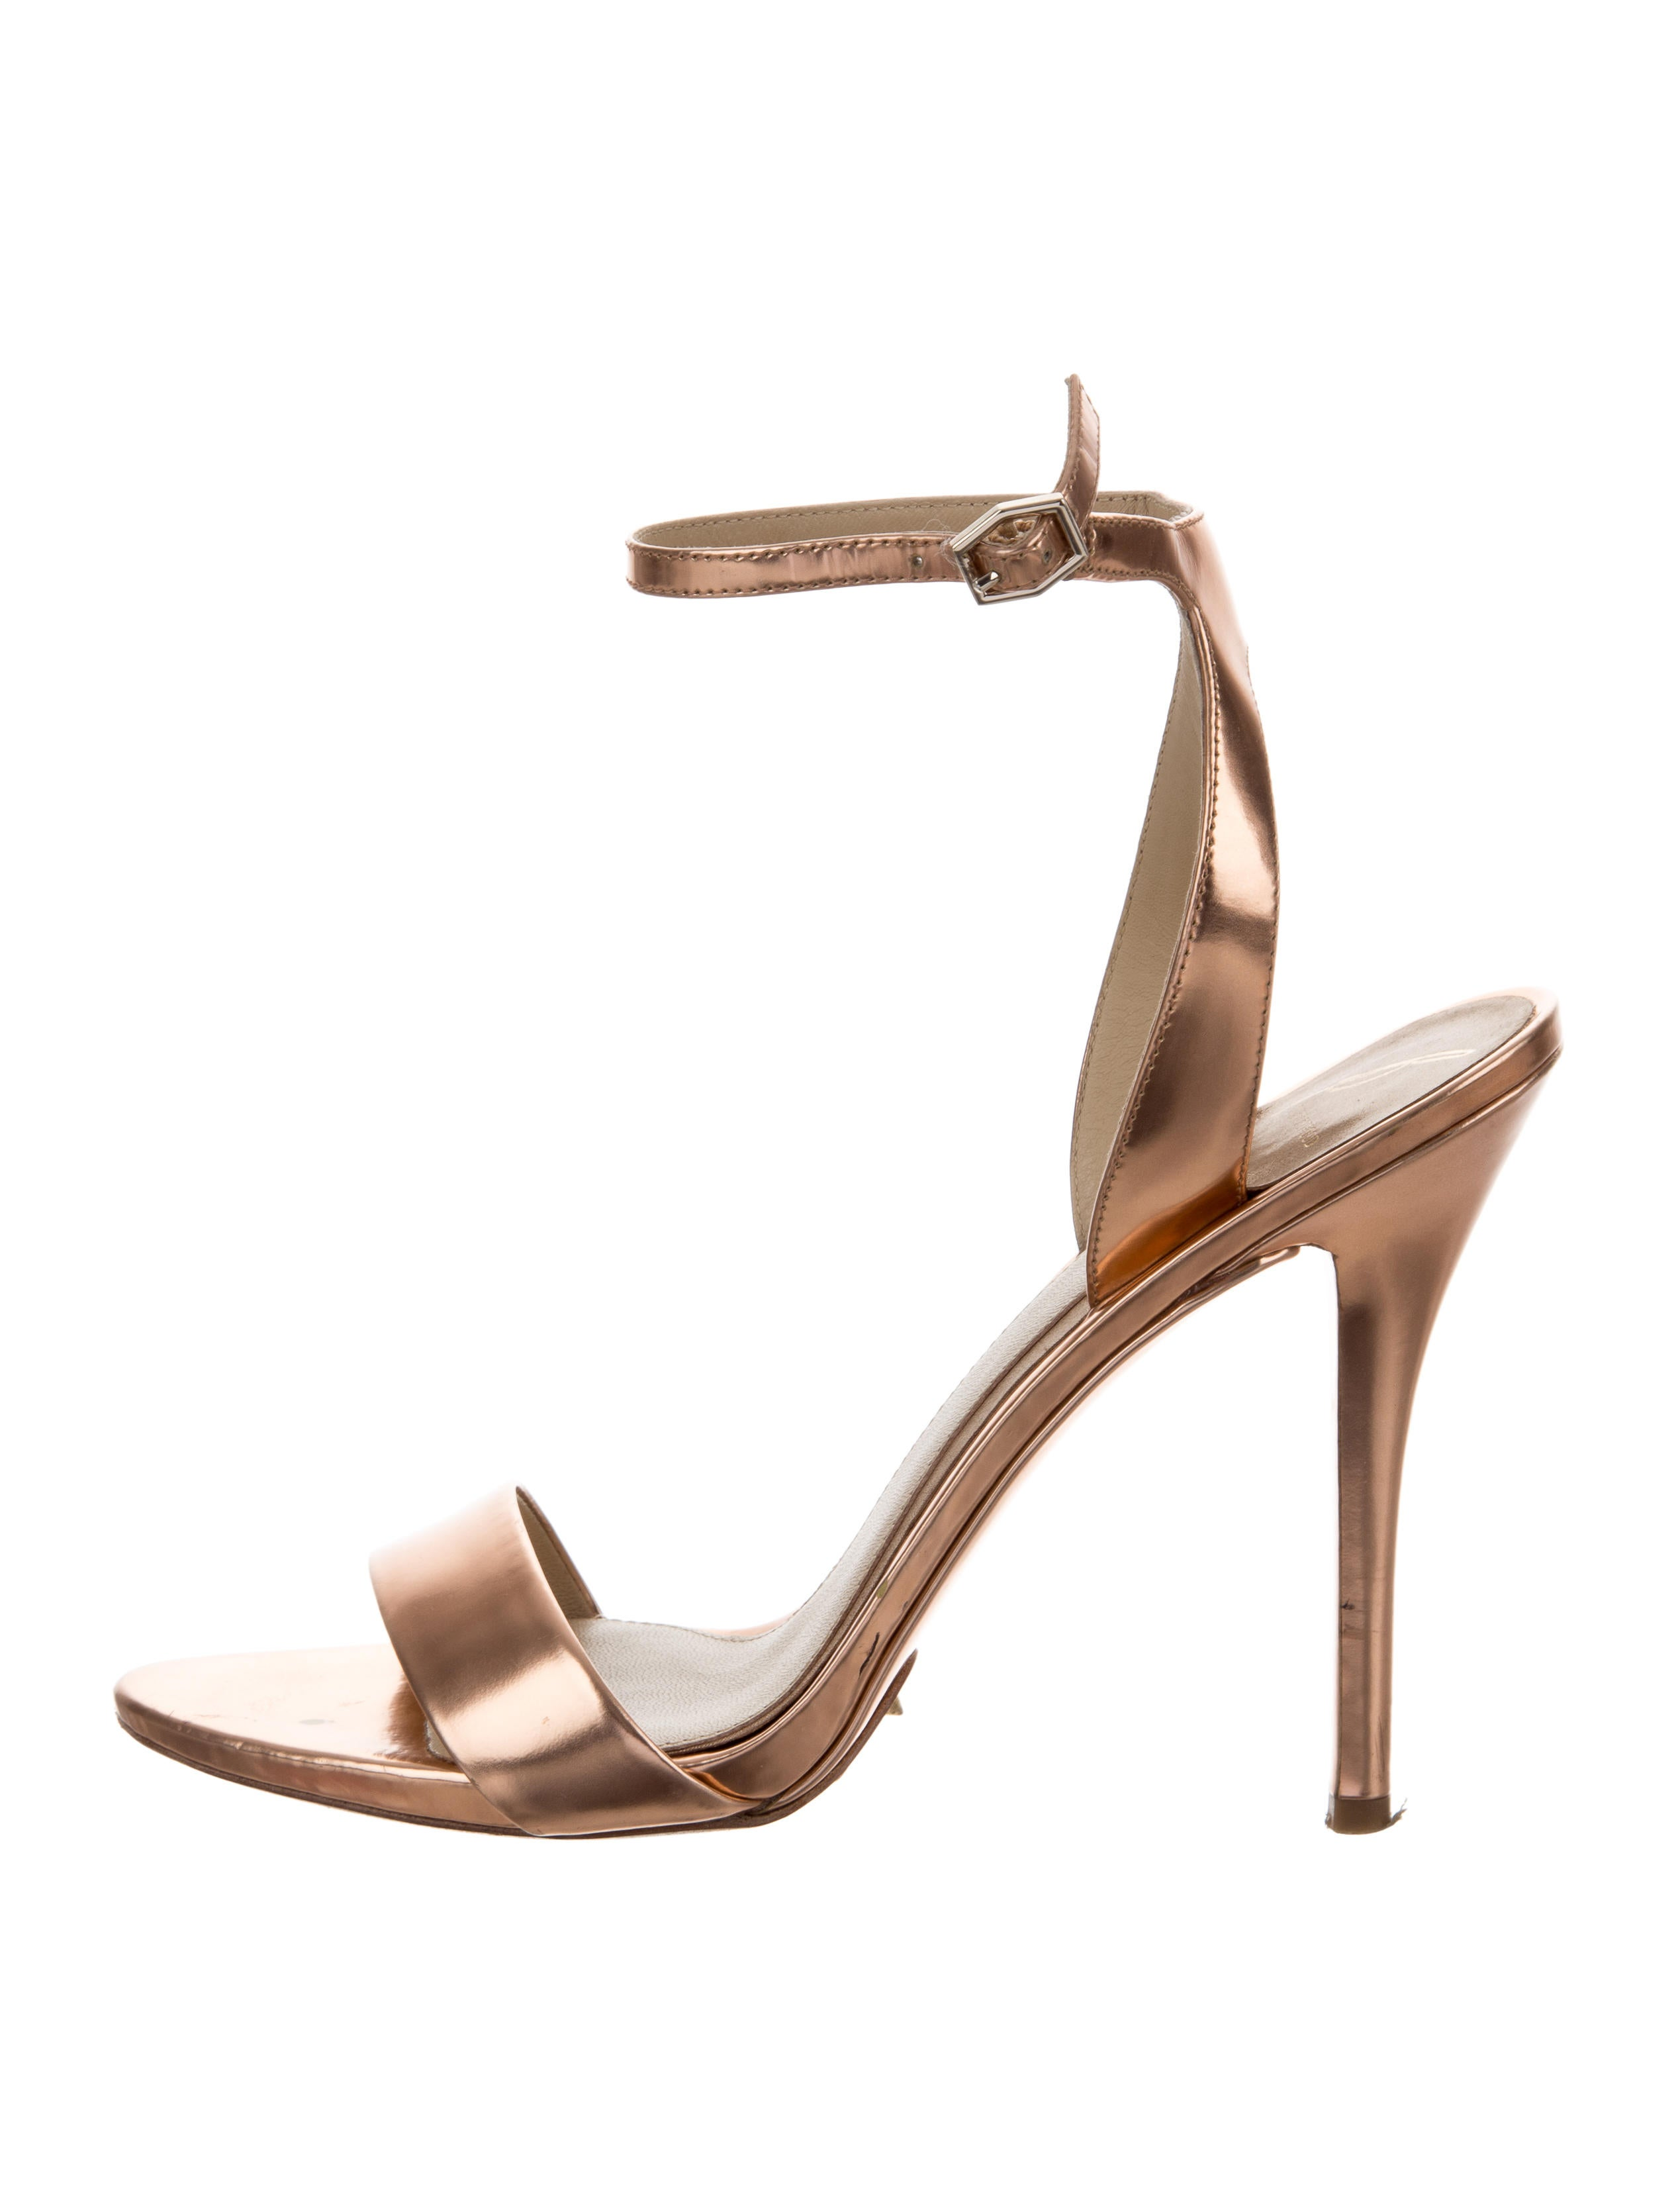 clearance really Brian Atwood Metallic Ankle Strap Sandals sale finishline sale best store to get cheap 2014 unisex 8CKEnccXA